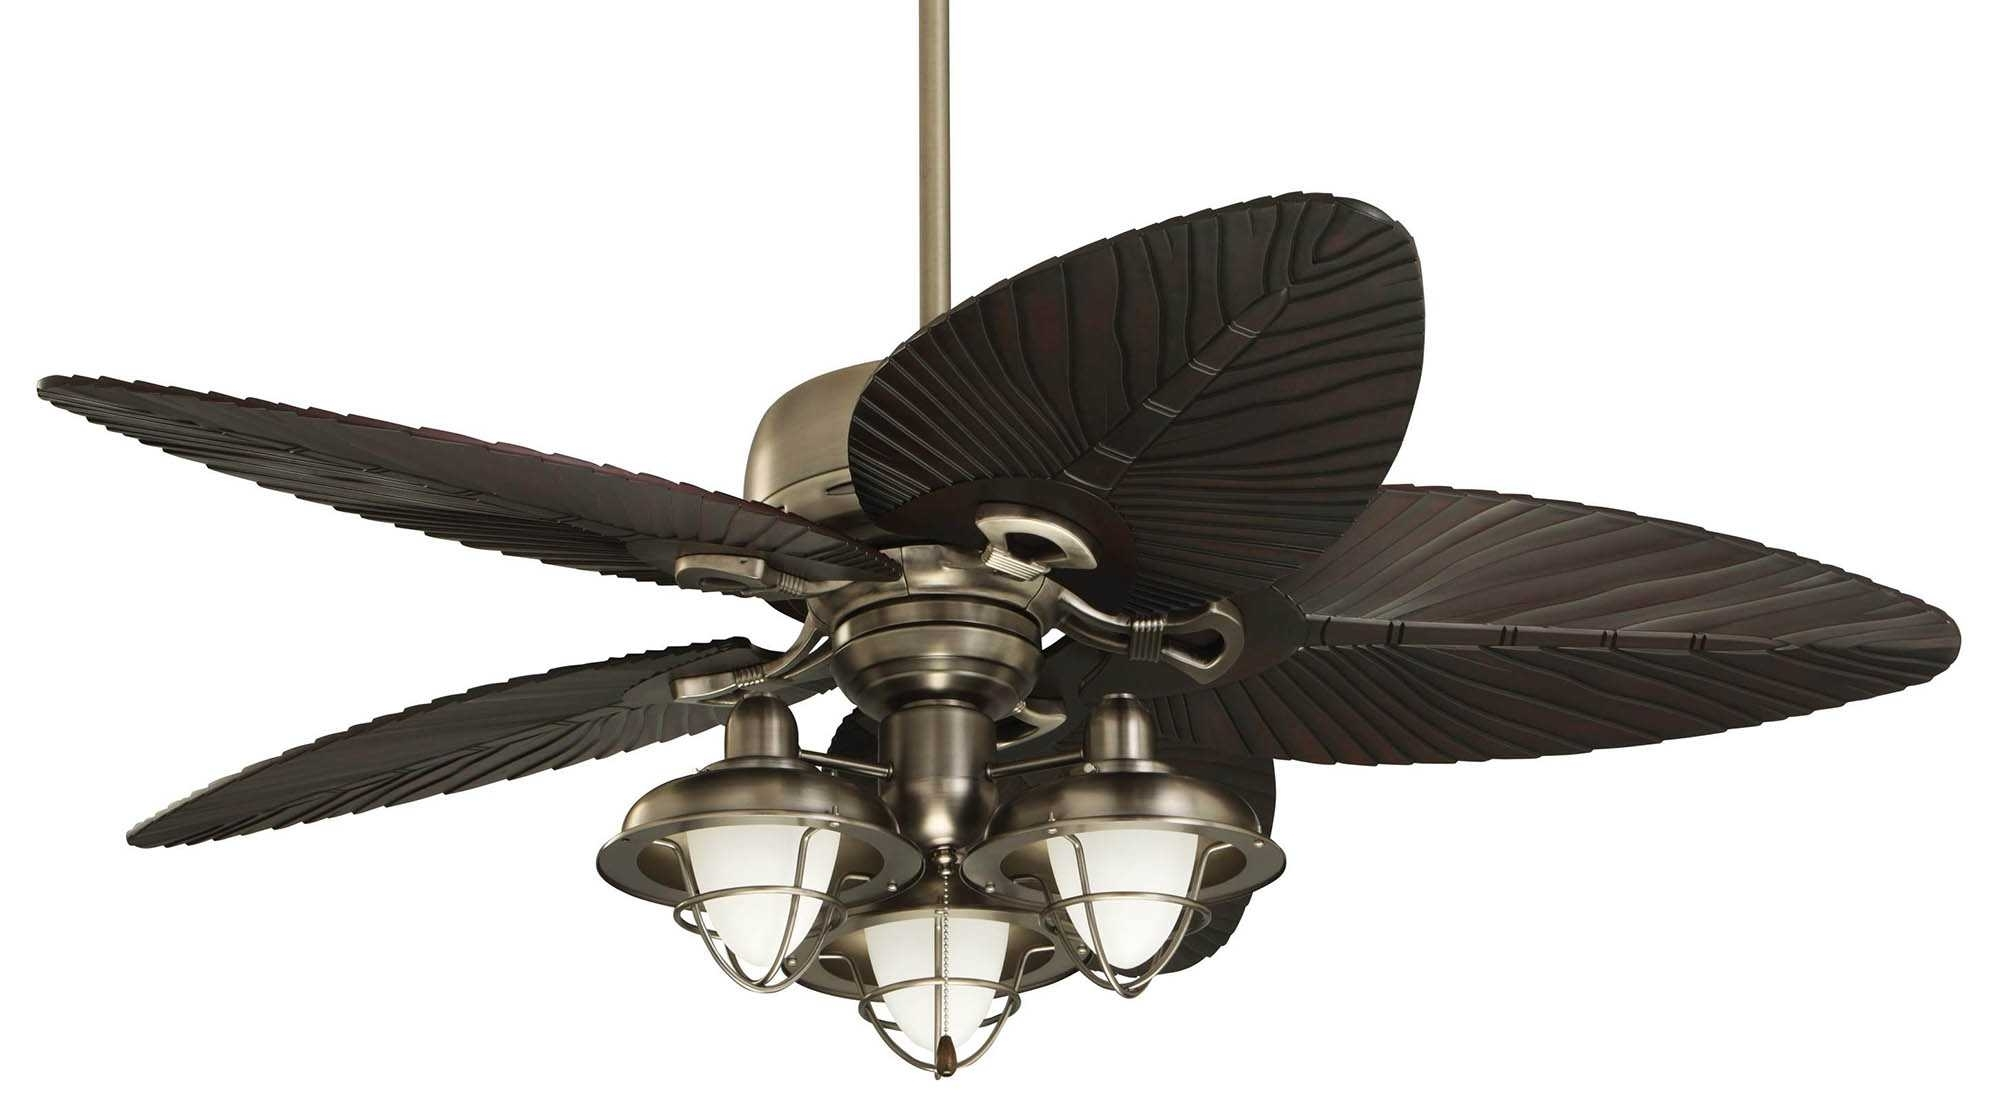 Ceiling Fan ~ Tropical Outdoor Ceiling Fans Picture Ideas With Light In Outdoor Ceiling Fans With Tropical Lights (#6 of 15)